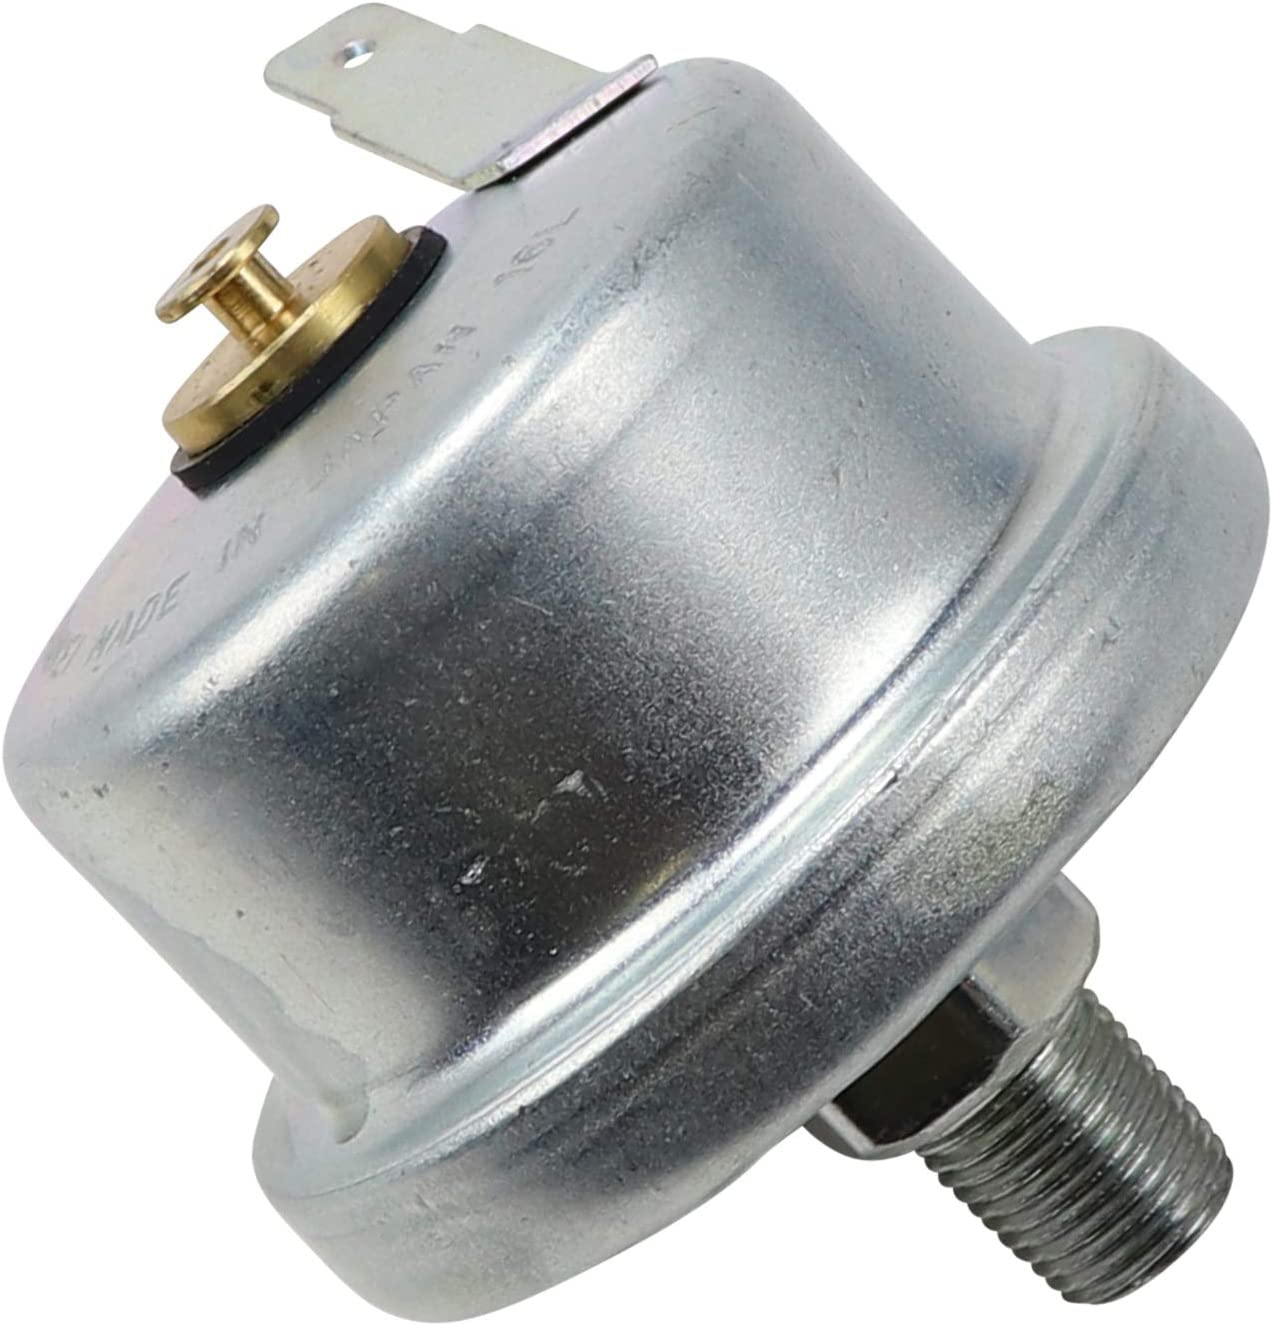 Max Outlet sale feature 83% OFF Beck Arnley 201-1761 Engine Switch Pressure Oil